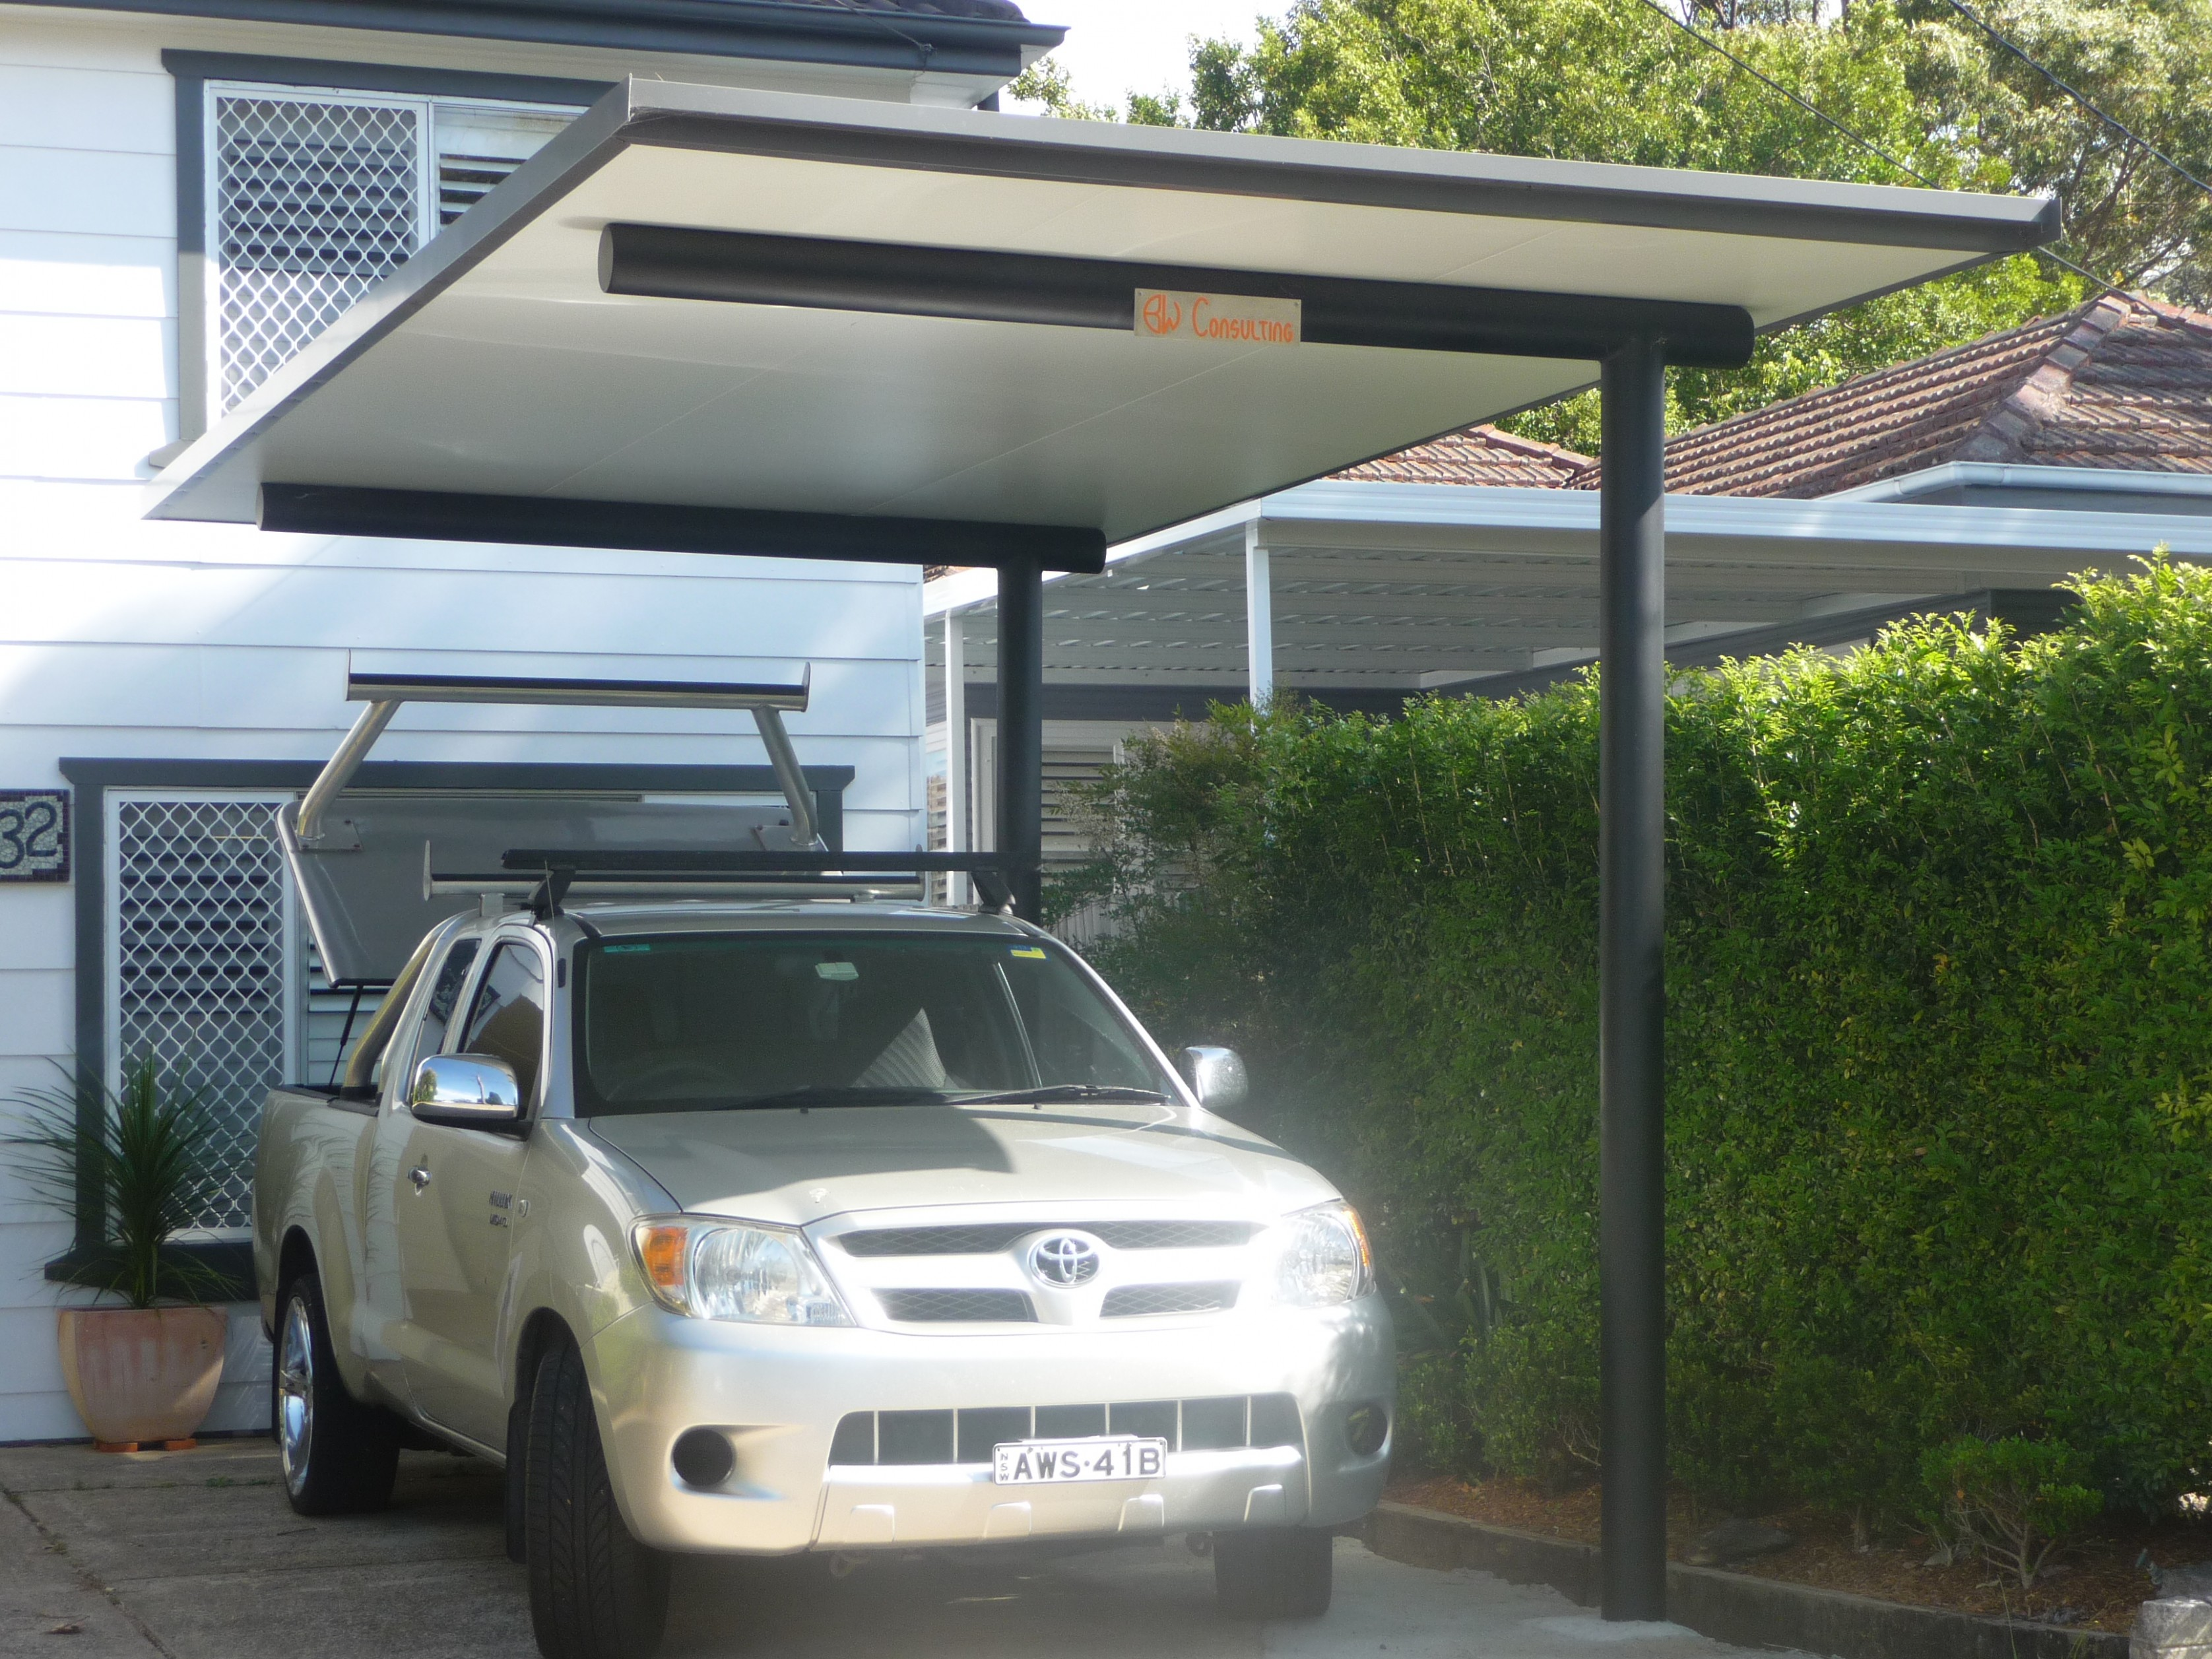 1517646550-14-images-about-driveway-carport-on-pinterest-what-is-a-driveway-carport.jpg